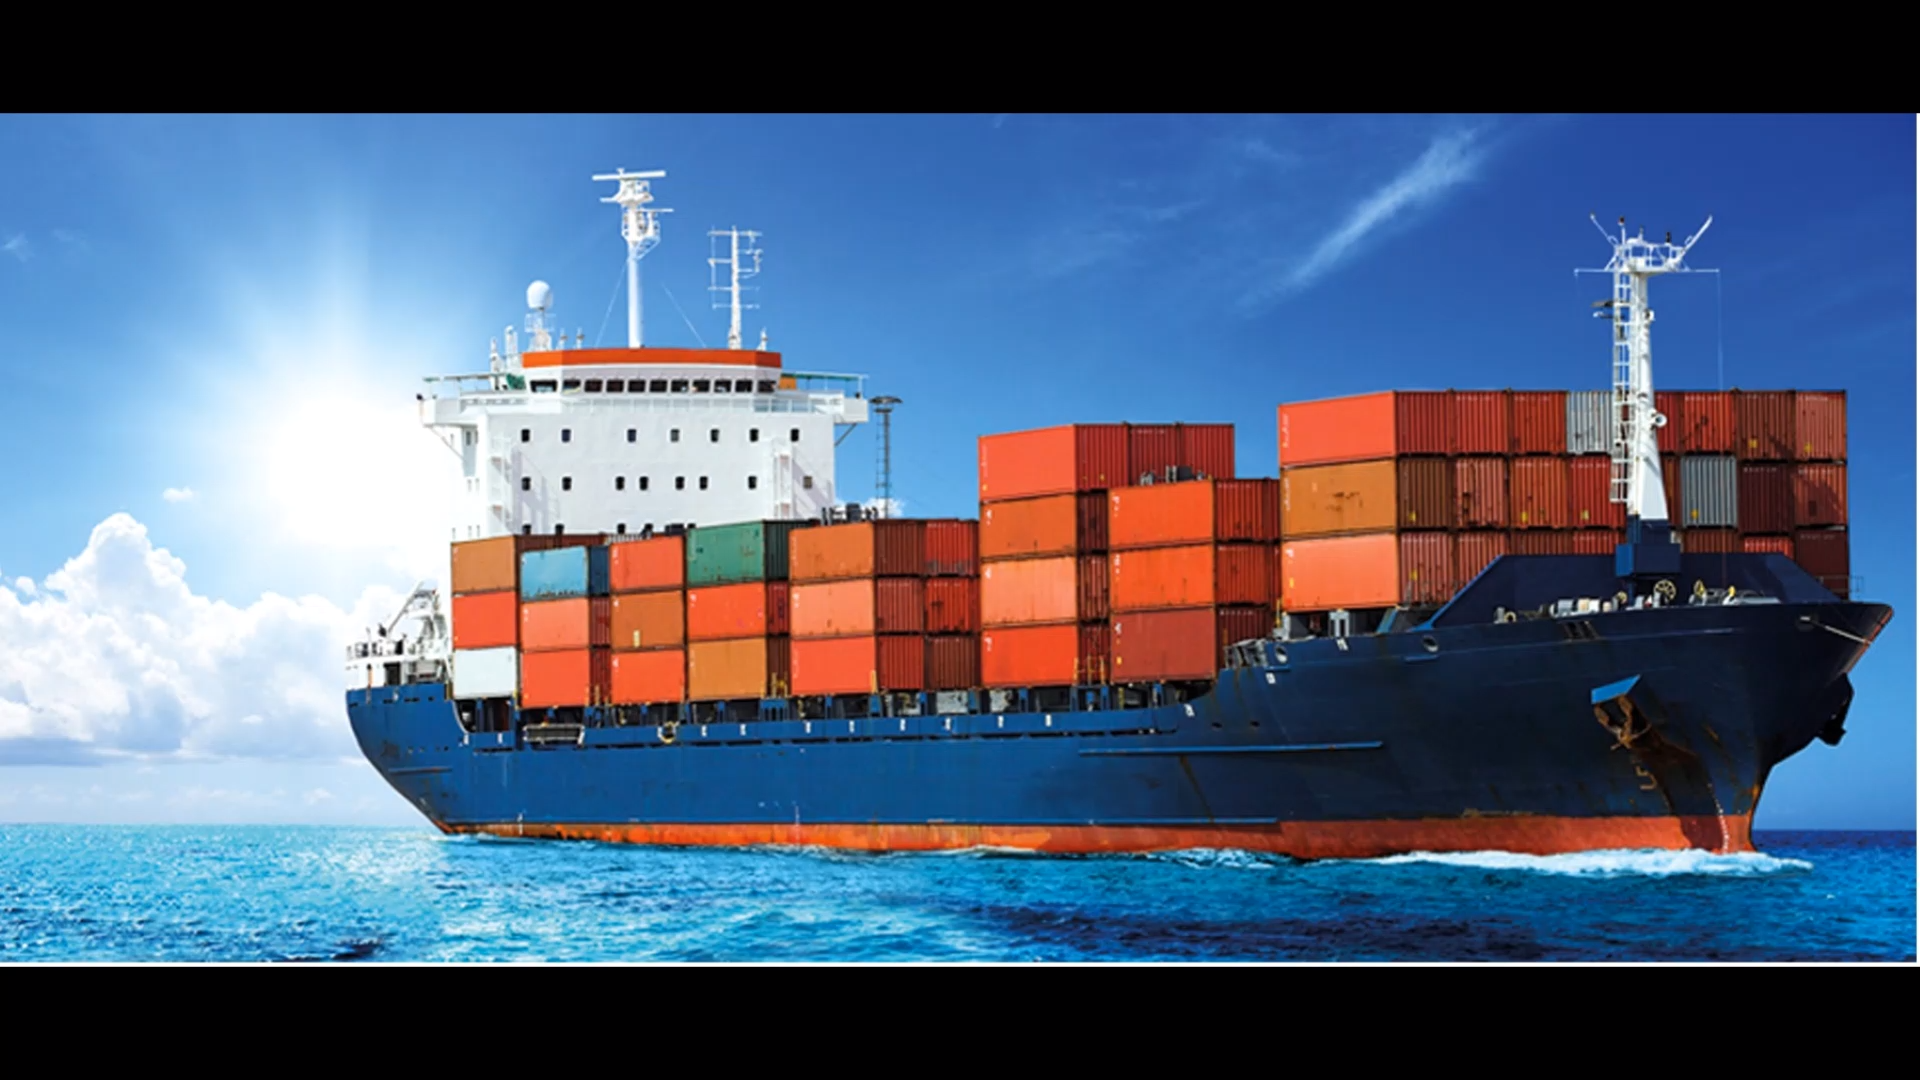 Sea Freight is the most common method of shipment for